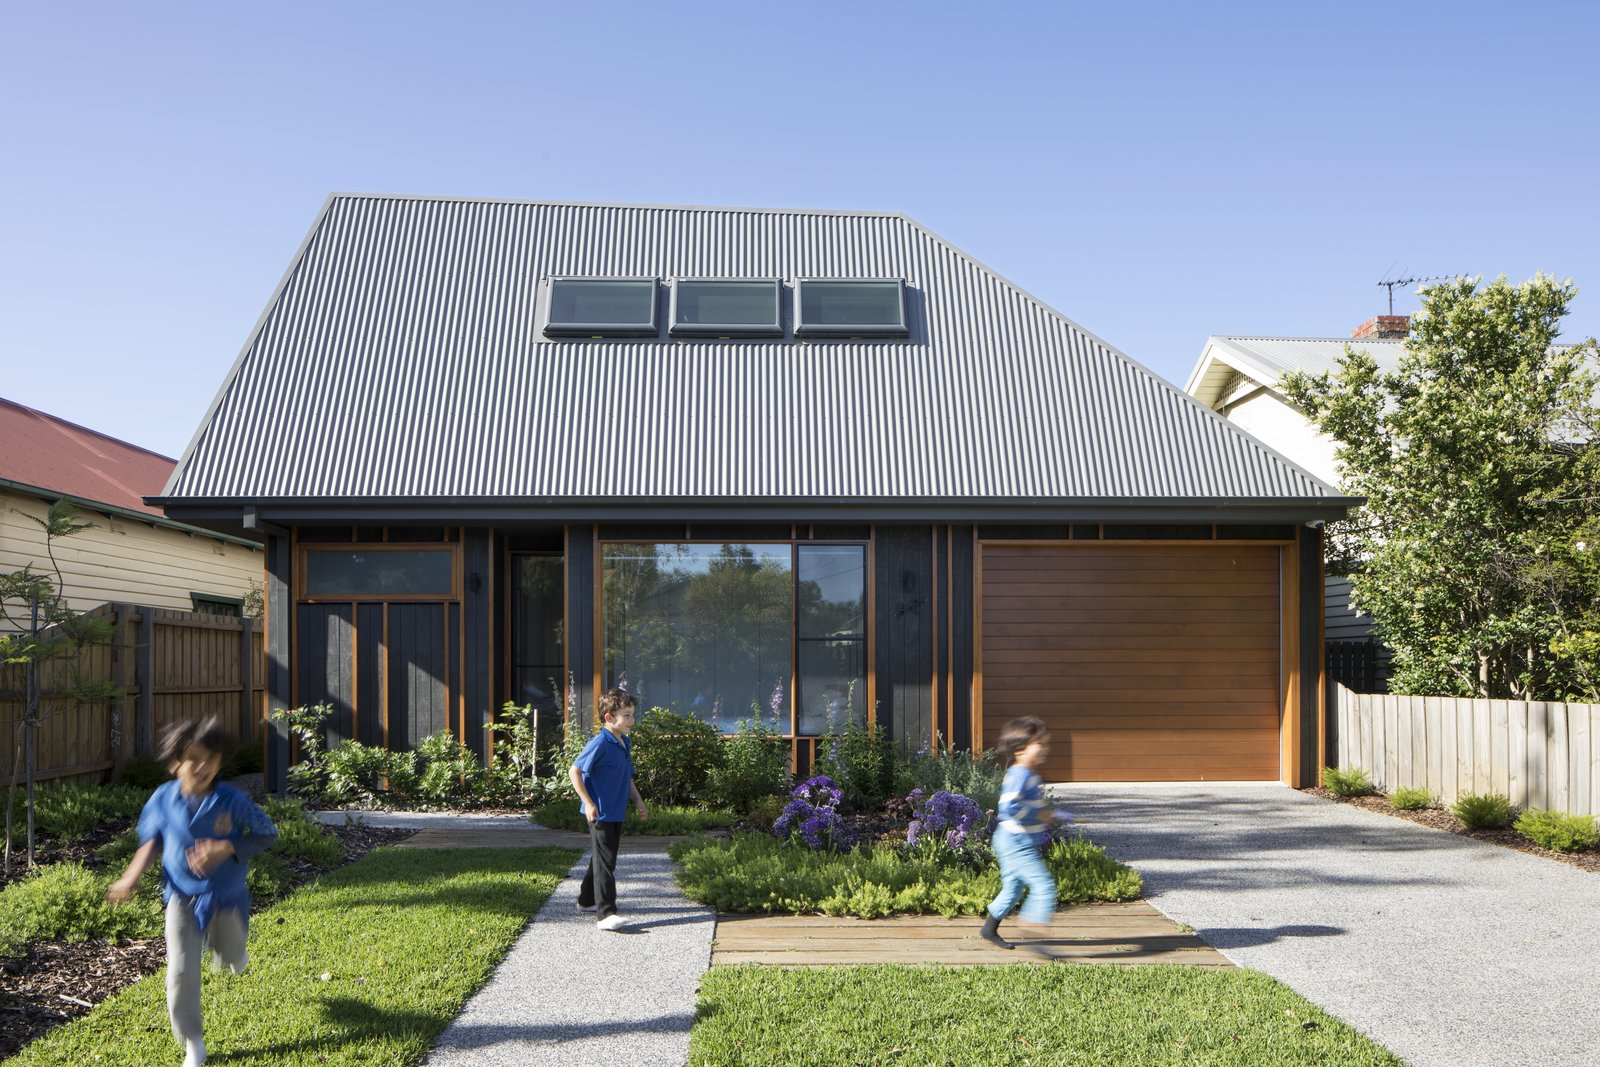 A Family Home In Australia Features A Playful Version Of